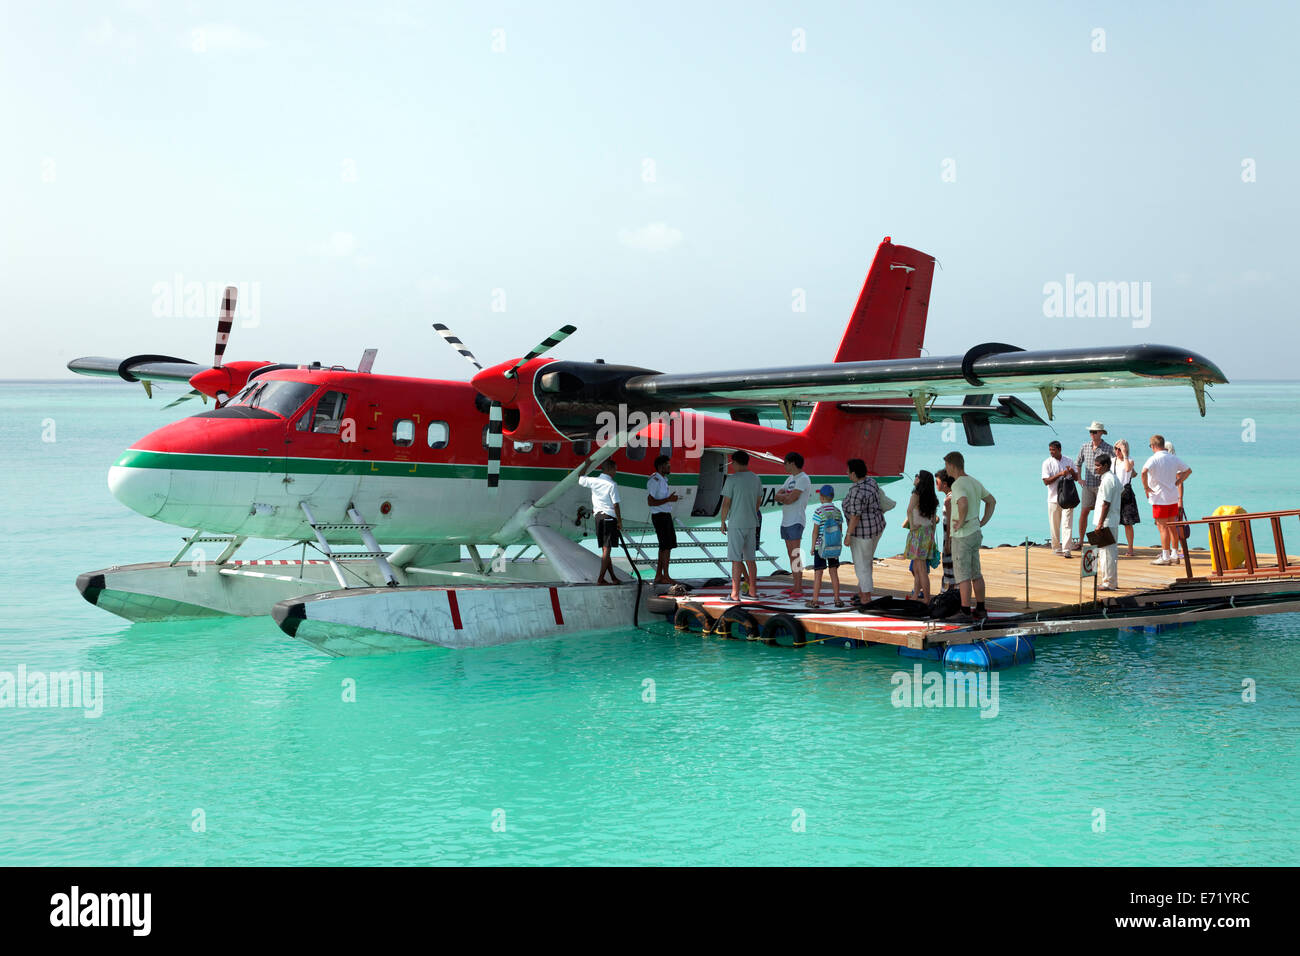 Passengers boarding a De Havilland Canada DHC-6 Twin Otter hydroplane, floating pontoon, Maldives - Stock Image